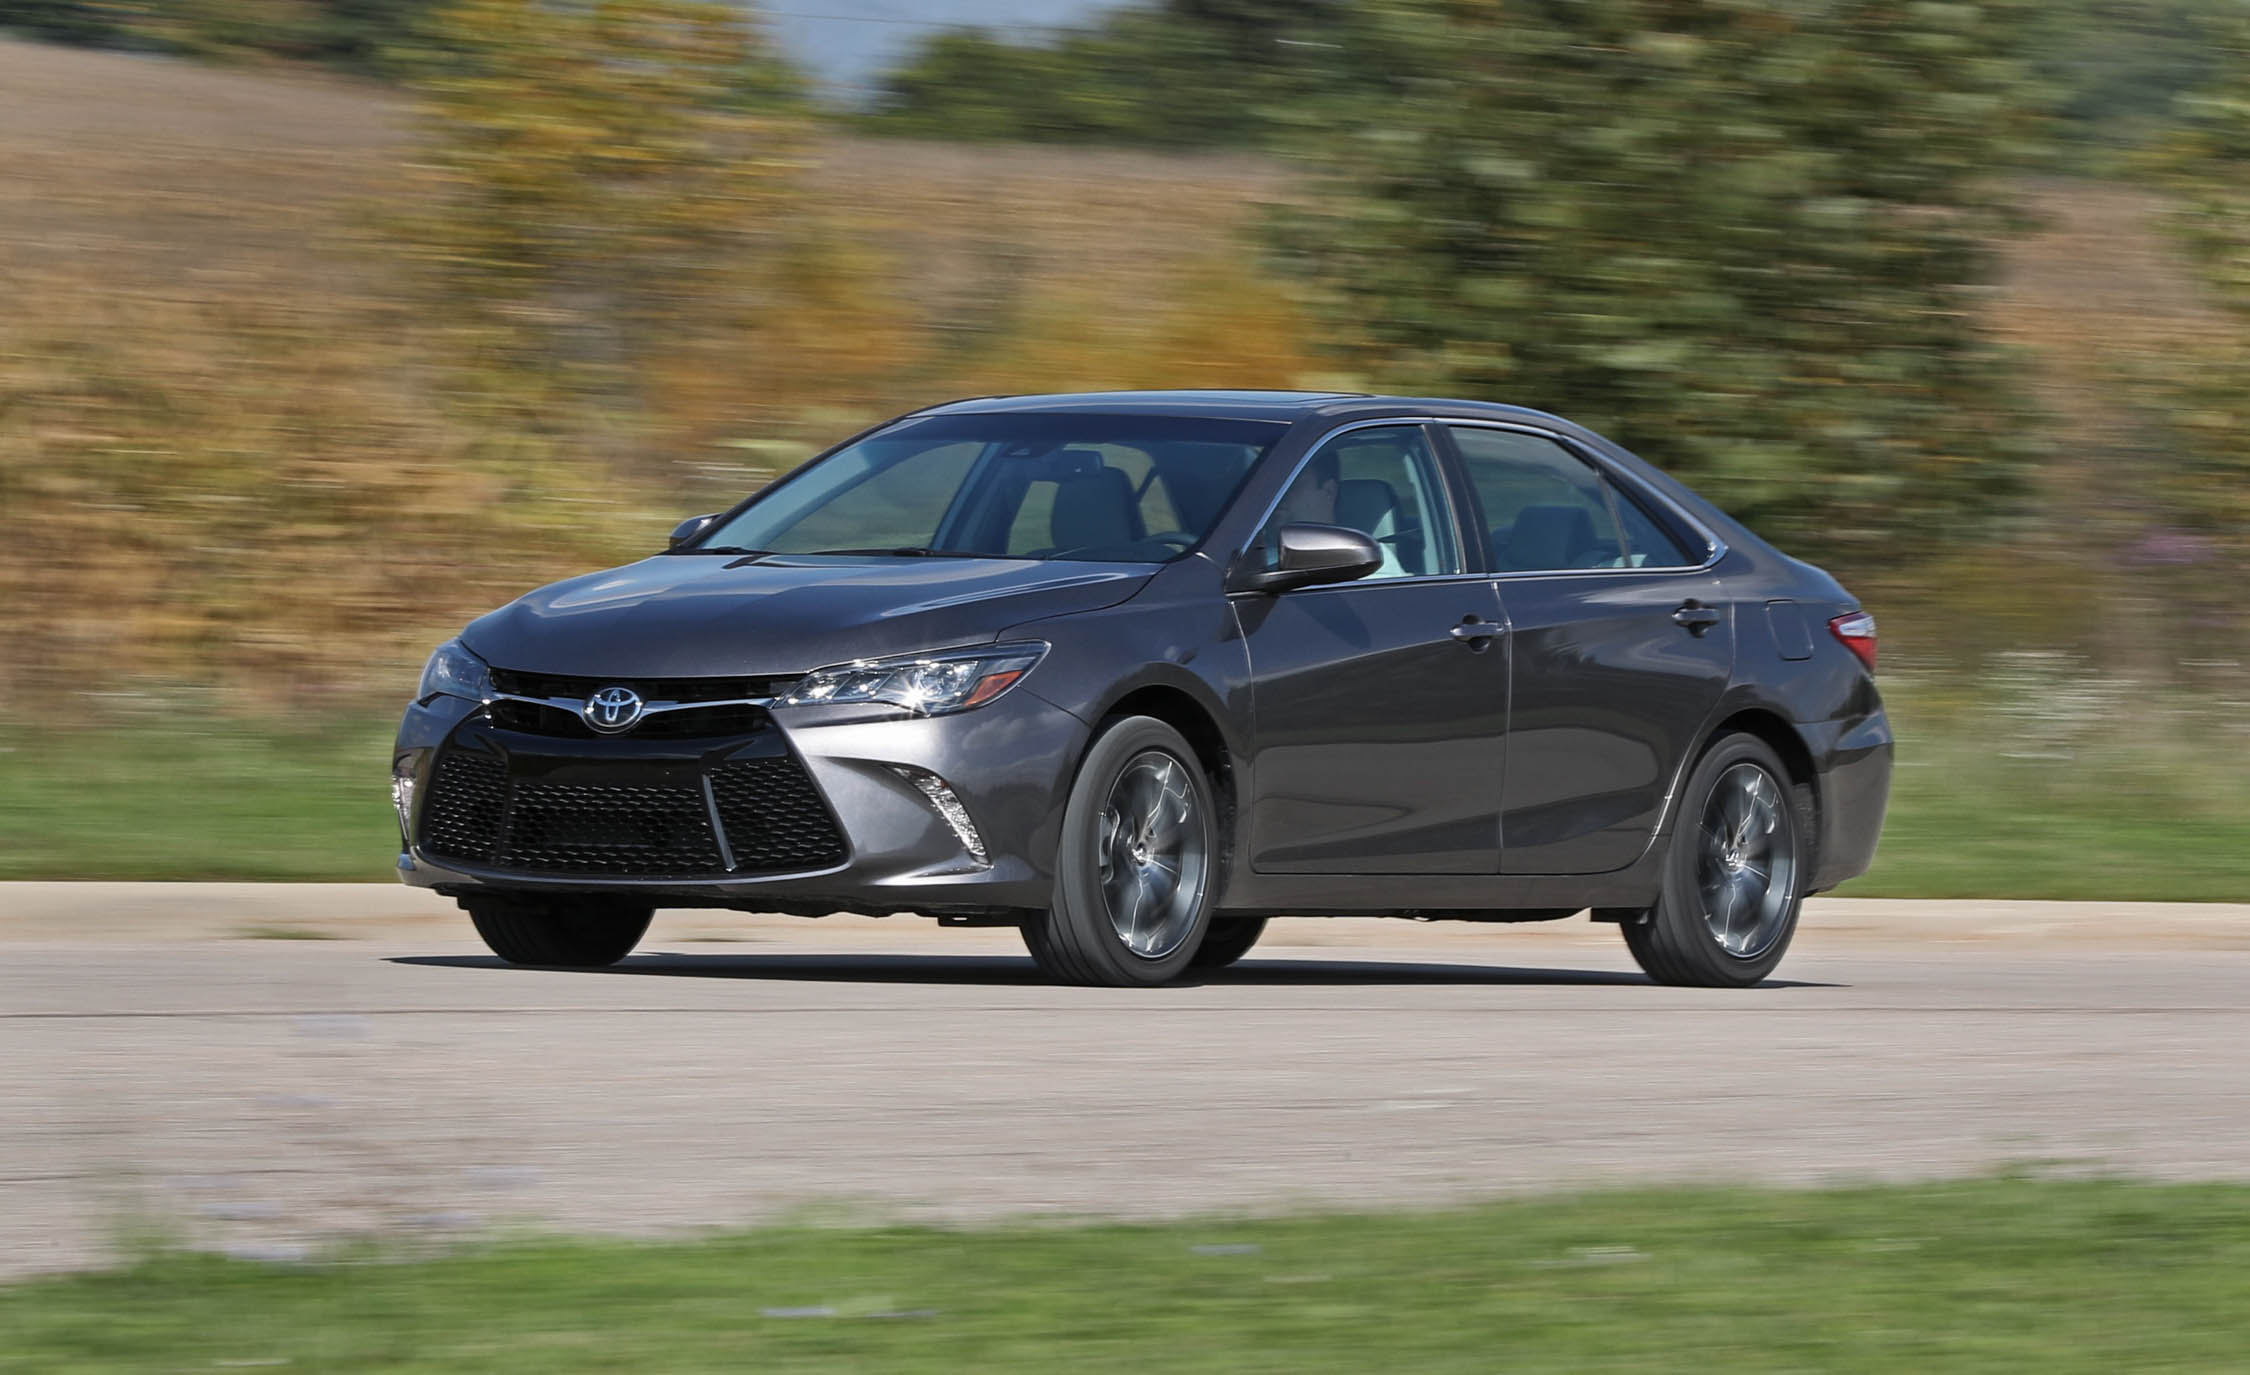 2017 Toyota Camry Grey Metallic (Photo 15 of 37)